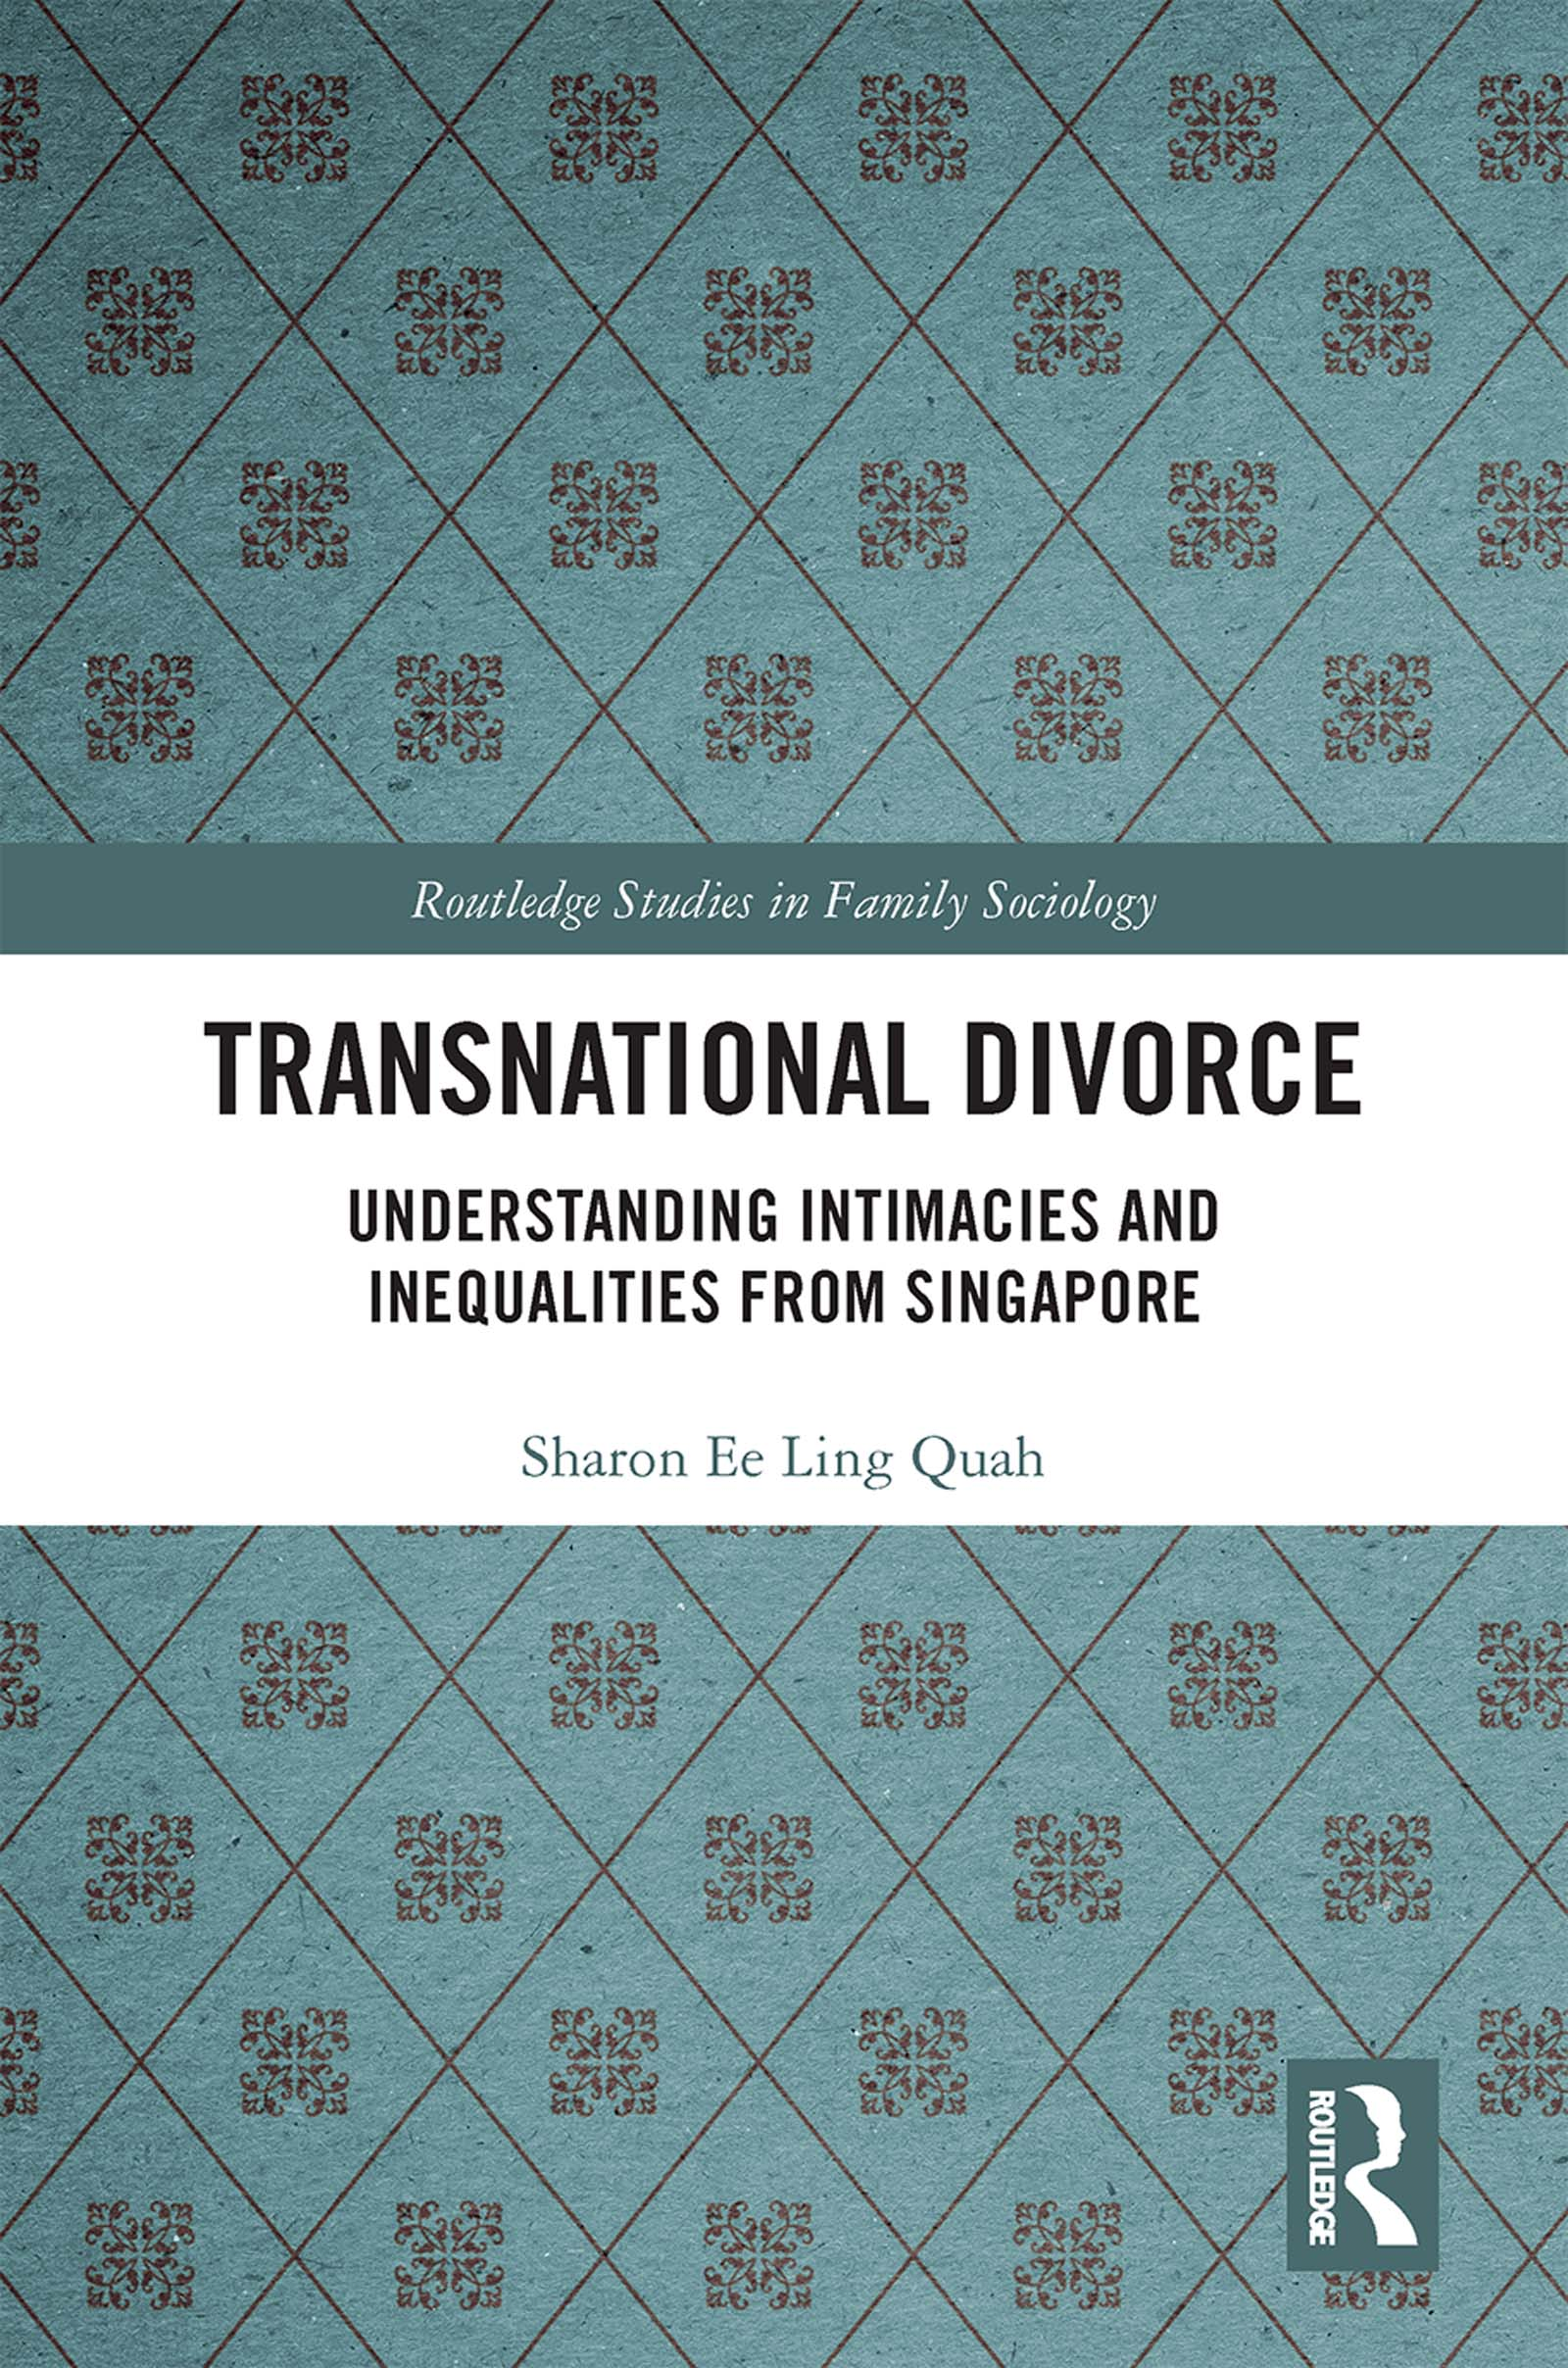 Transnational Divorce: Understanding intimacies and inequalities from Singapore book cover